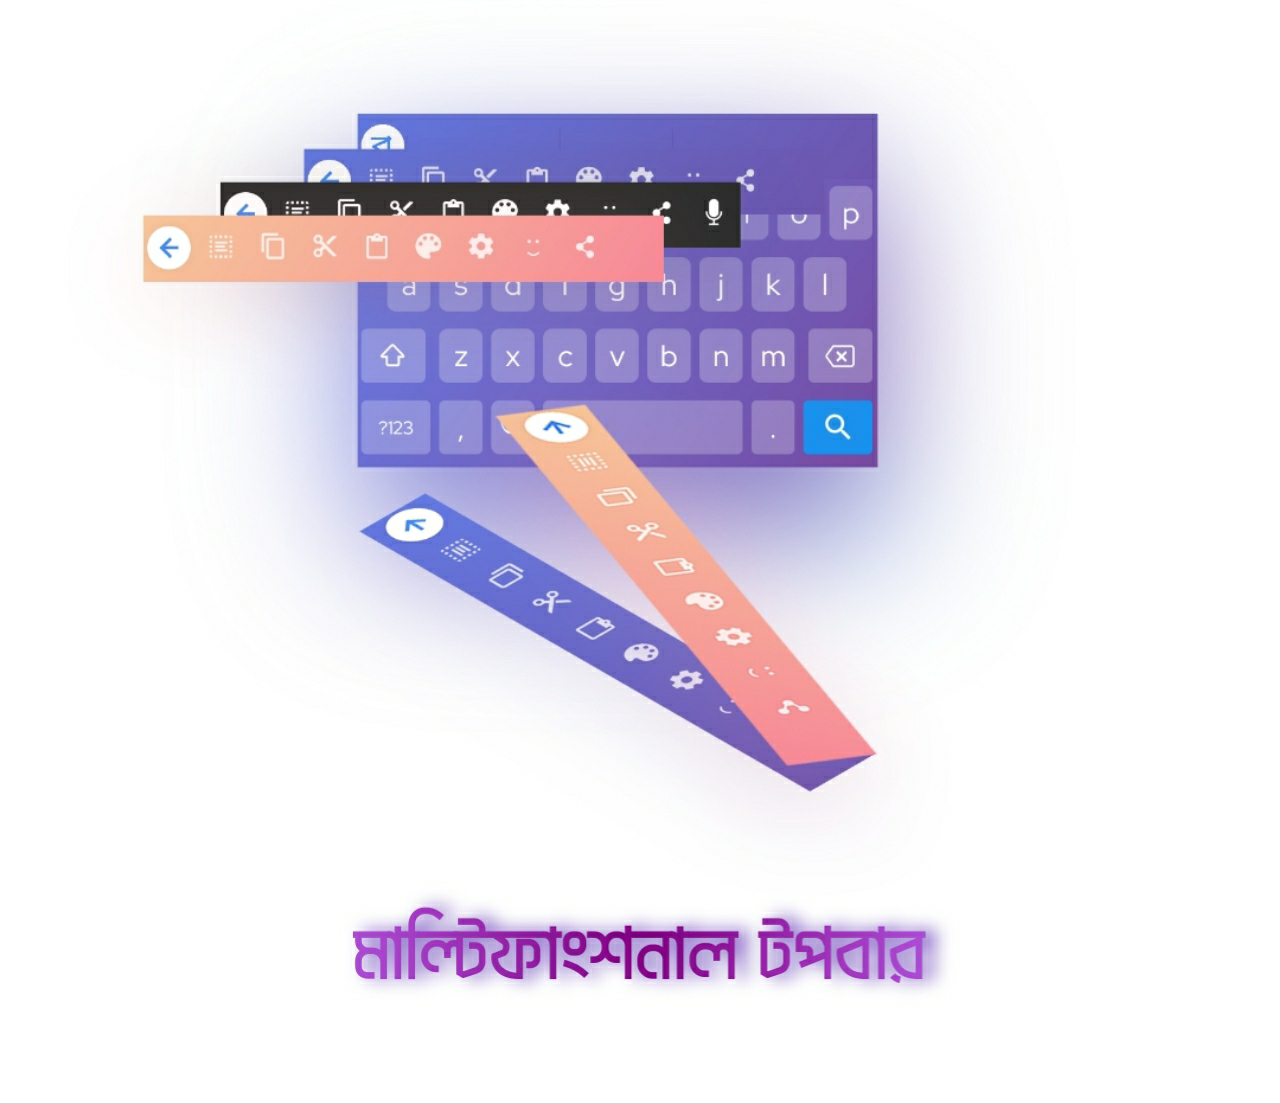 Borno keyboard for android